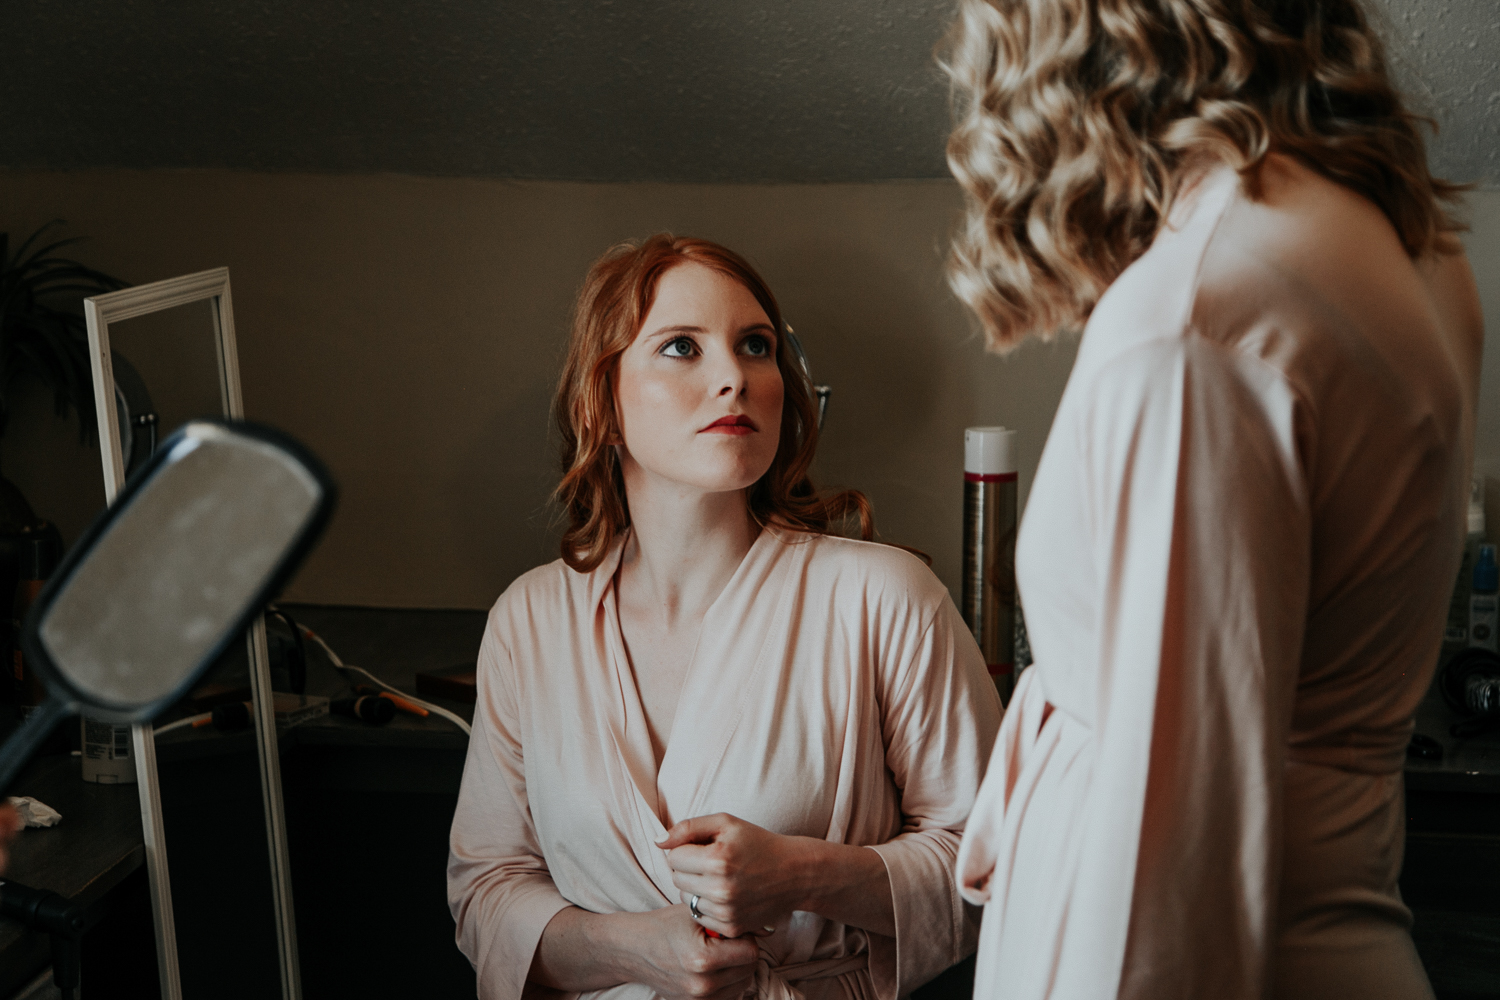 lethbridge-wedding-photographer-love-and-be-loved-photography-dan-tynnea-picture-image-photo-16.jpg